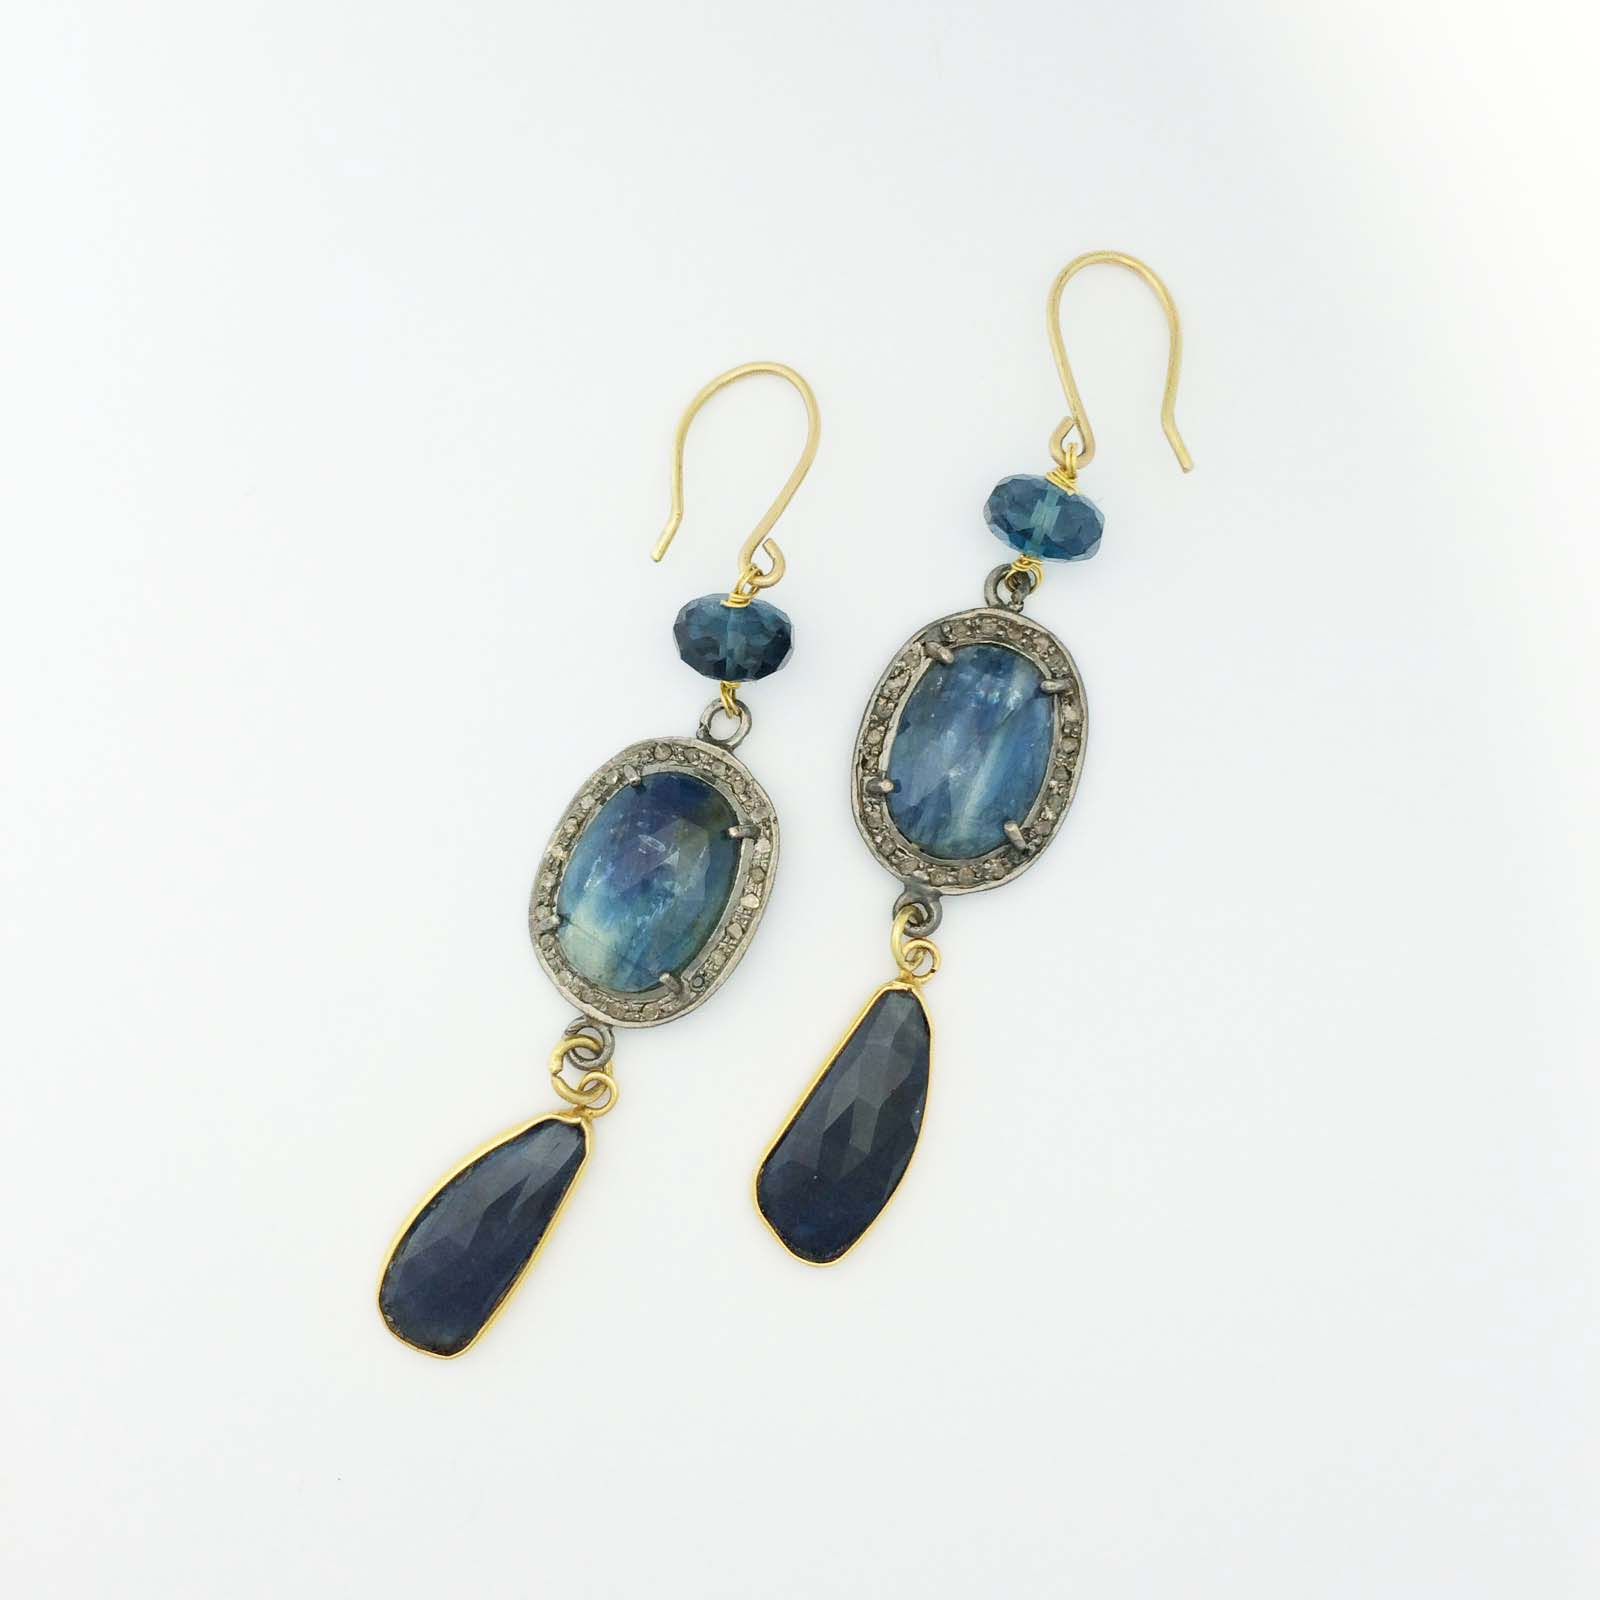 18k London Blue Topaz drop earrings